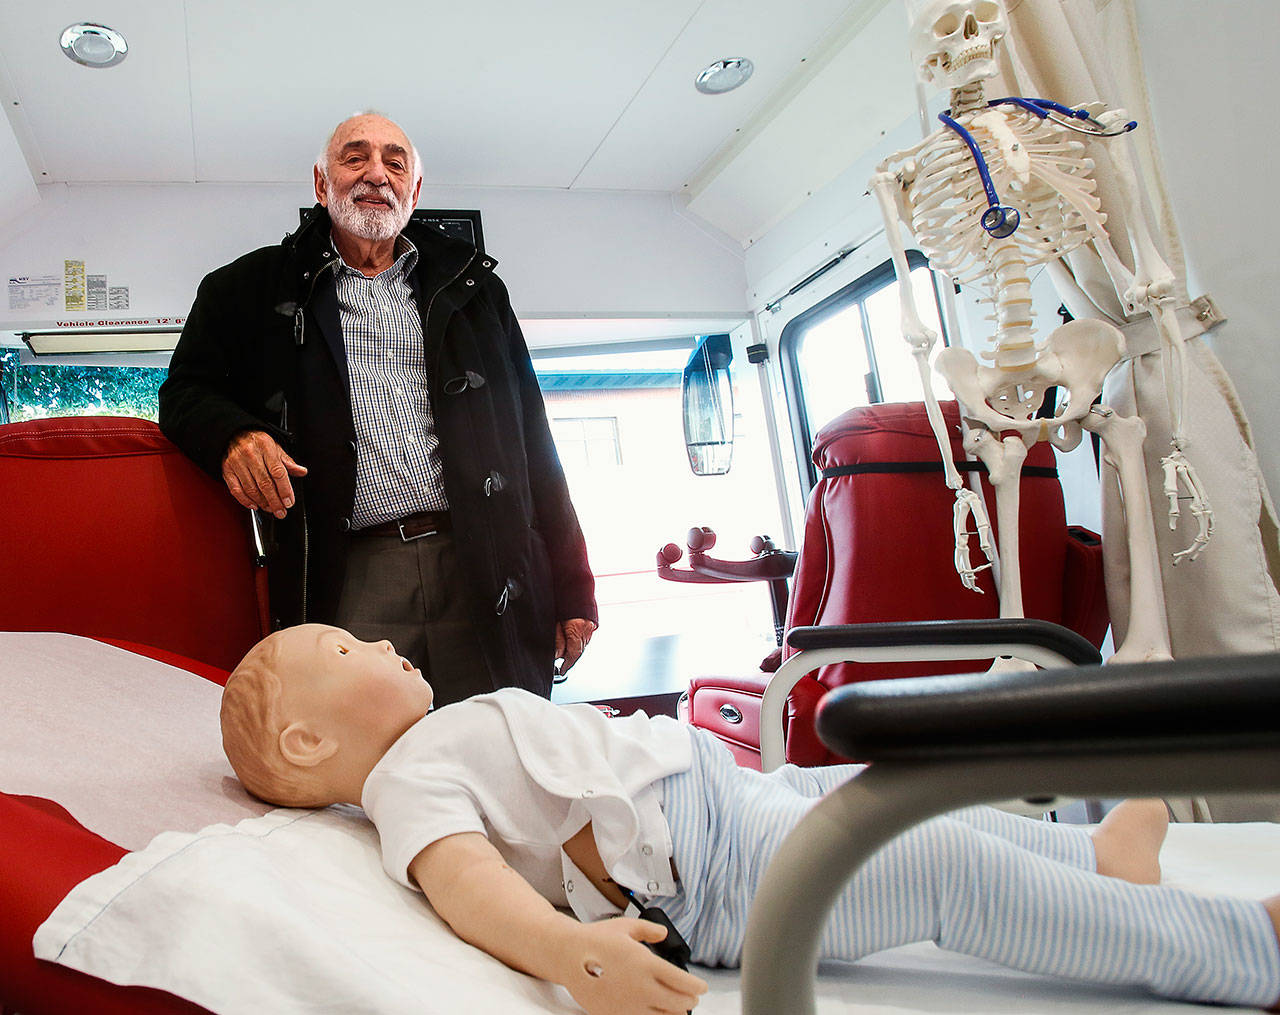 Dr. Larry Schecter, associate dean of clinical education-Everett with WSU's Elson S. Floyd College of Medicine, shows off the new Range Health mobile medical unit in Everett on Thursday. It features two exam rooms, and high-fidelity mannequins used for simulated patient care. (Dan Bates / The Herald)